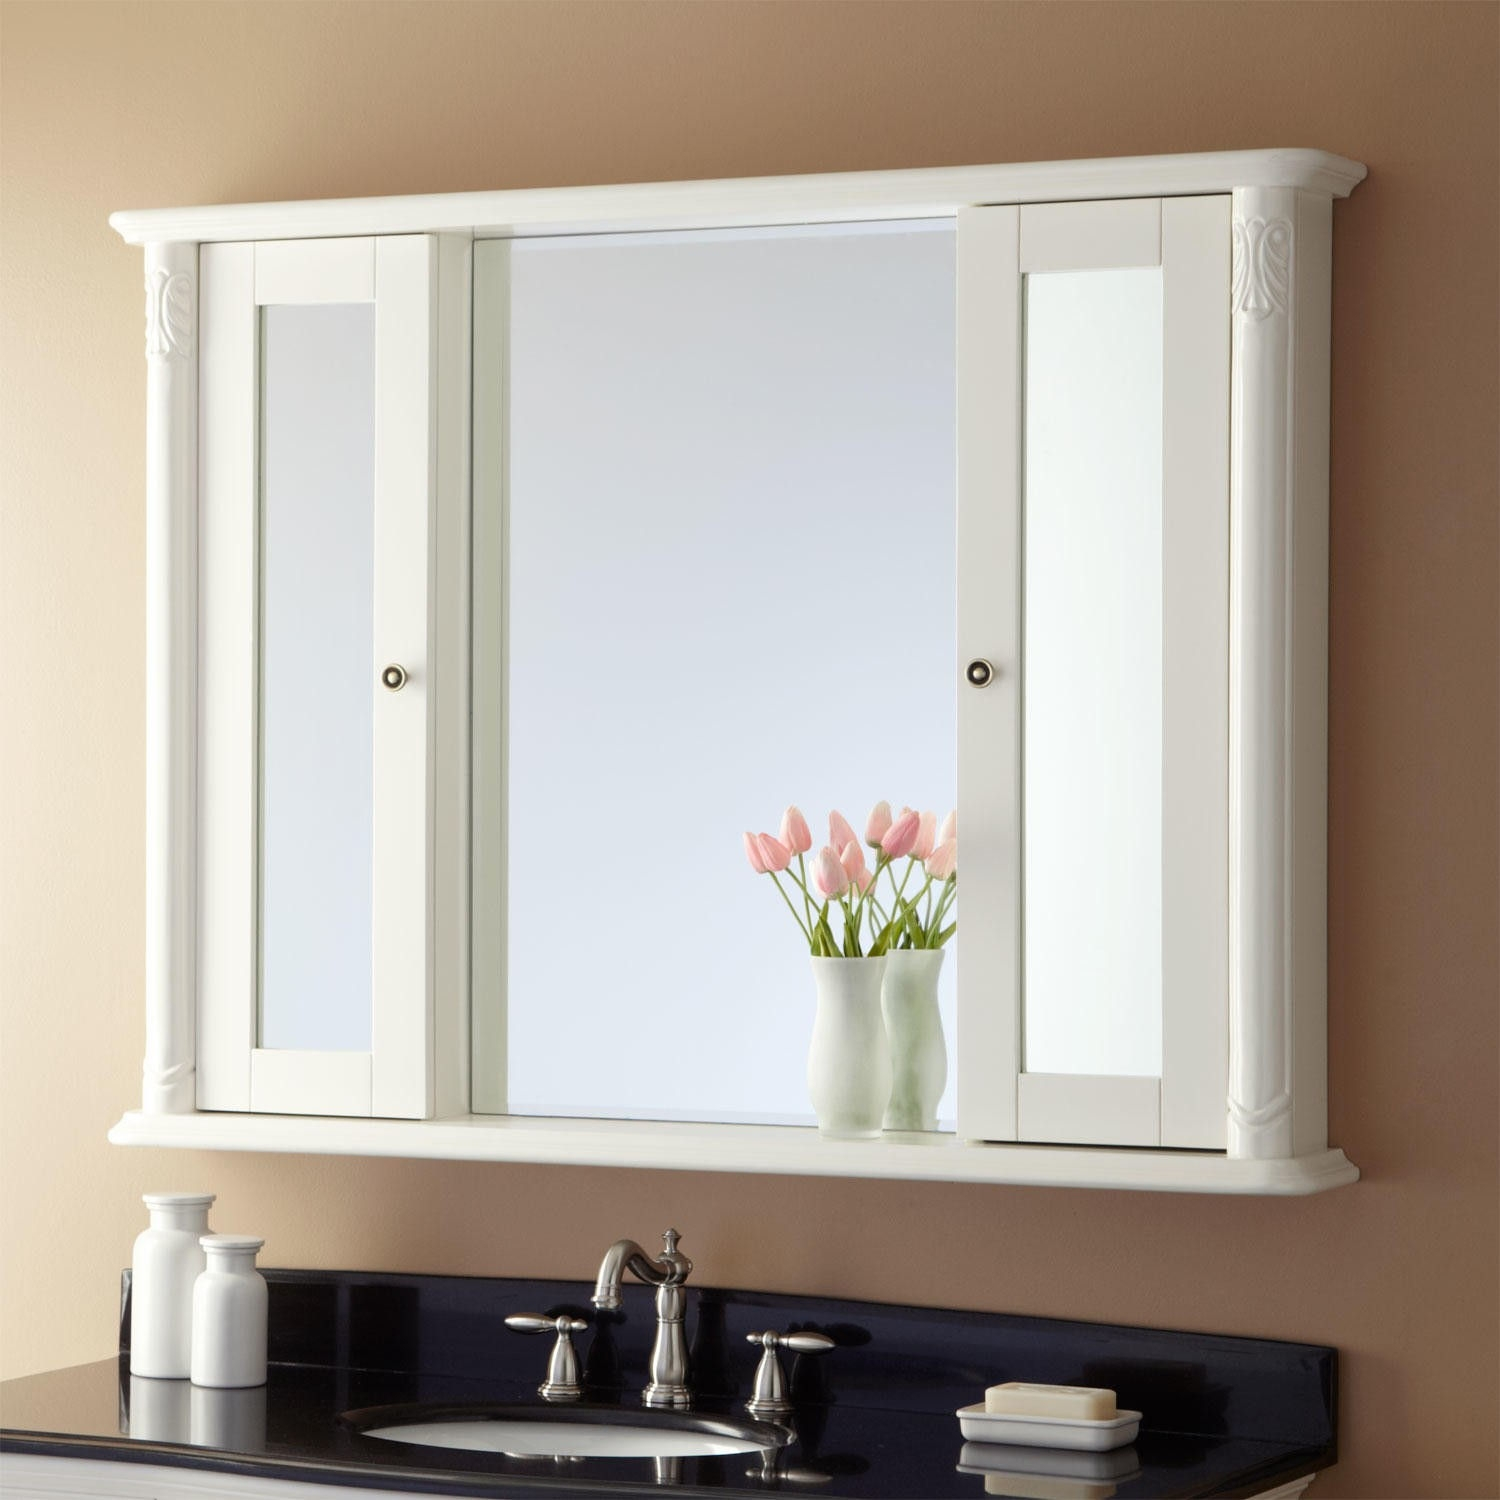 Permalink to Bathroom Cabinets With A Mirror